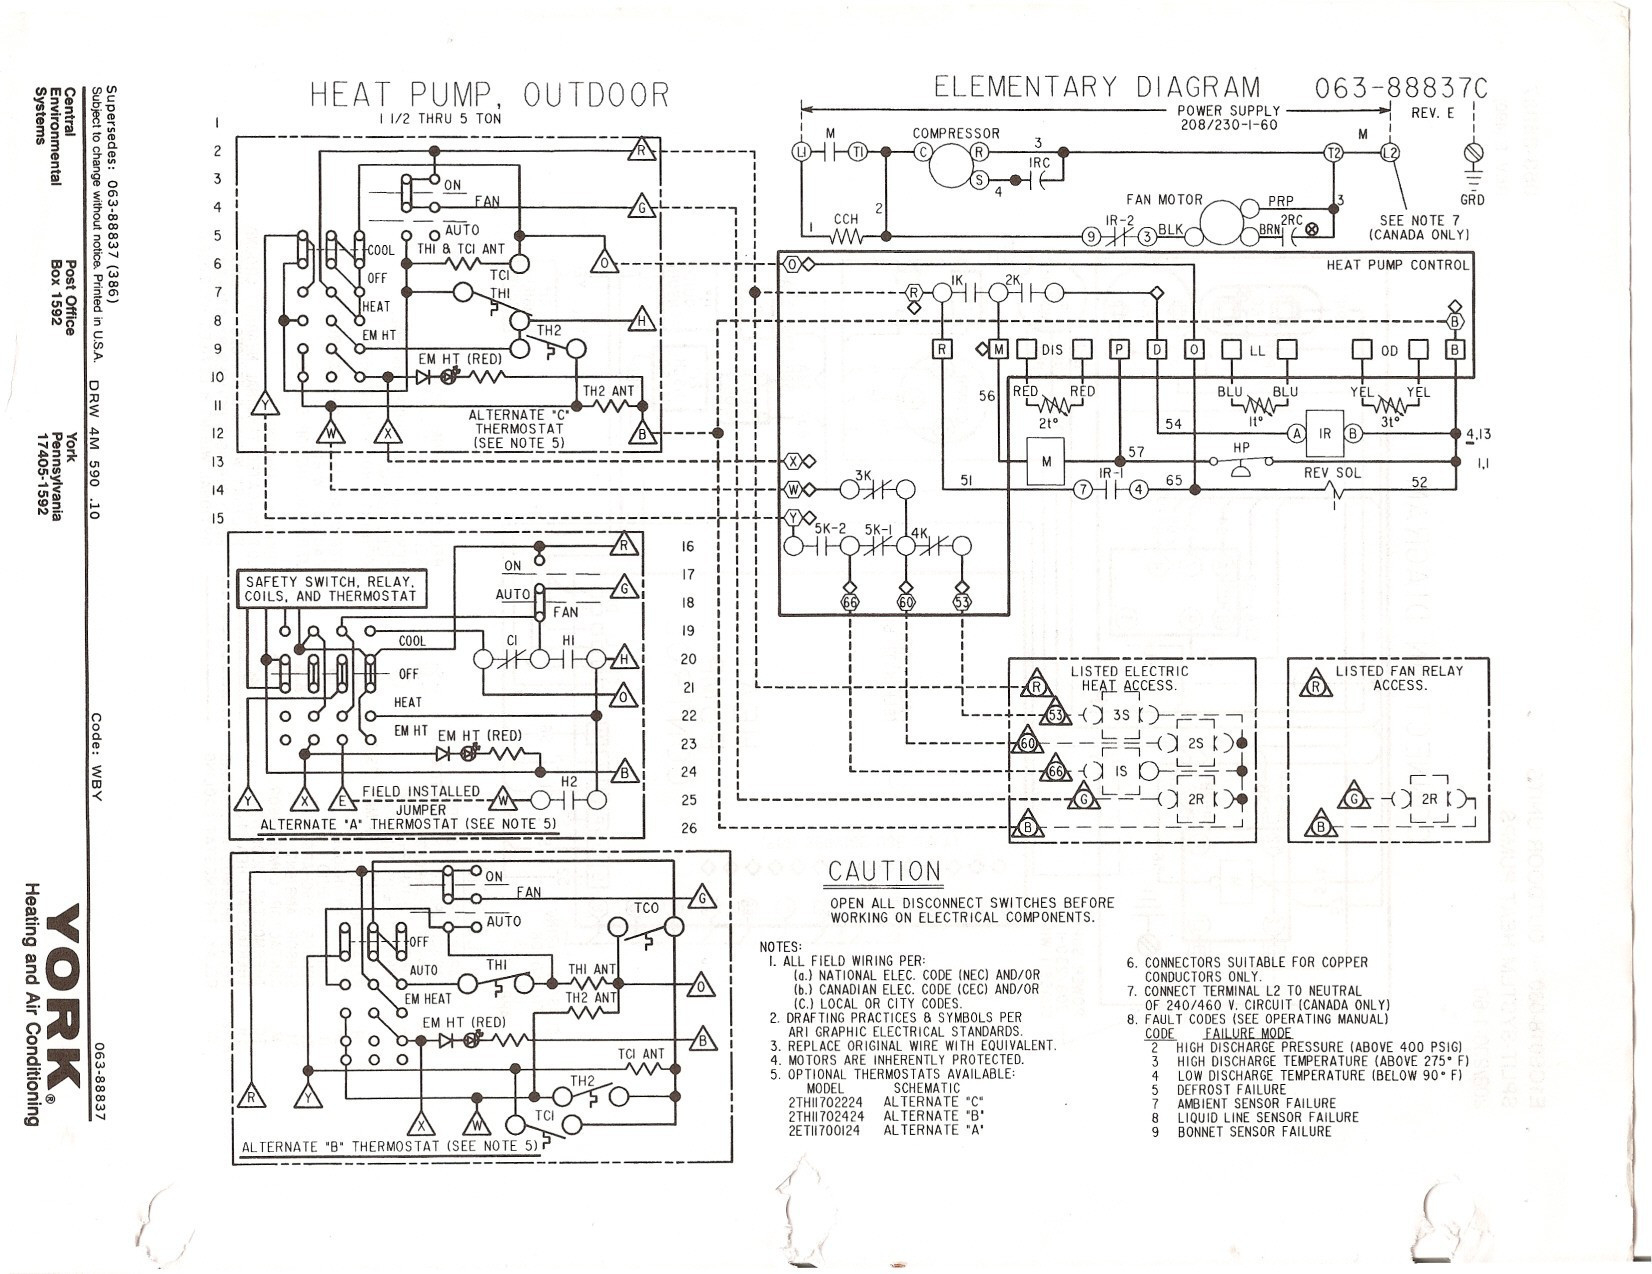 Goodman Heat Pump Wiring Diagram Gallery on goodman diagram fatigue, goodman calculation diagram, goodman gas furnace diagram, goodman furnace thermostat wiring, goodman ac units, air handler diagram, goodman air handler thermostat wiring, heating and ac diagram, wiring a room diagram, goodman condenser wiring-diagram, goodman heat pump parts diagram, goodman package units diagram, goodman circuit board diagram, air conditioning heat pump diagram, goodman heat sequencer wire diagram, goodman wiring schematics, goodman air conditioner schematic diagram, goodman mfg wiring diagrams, goodman air handler low voltage connections,